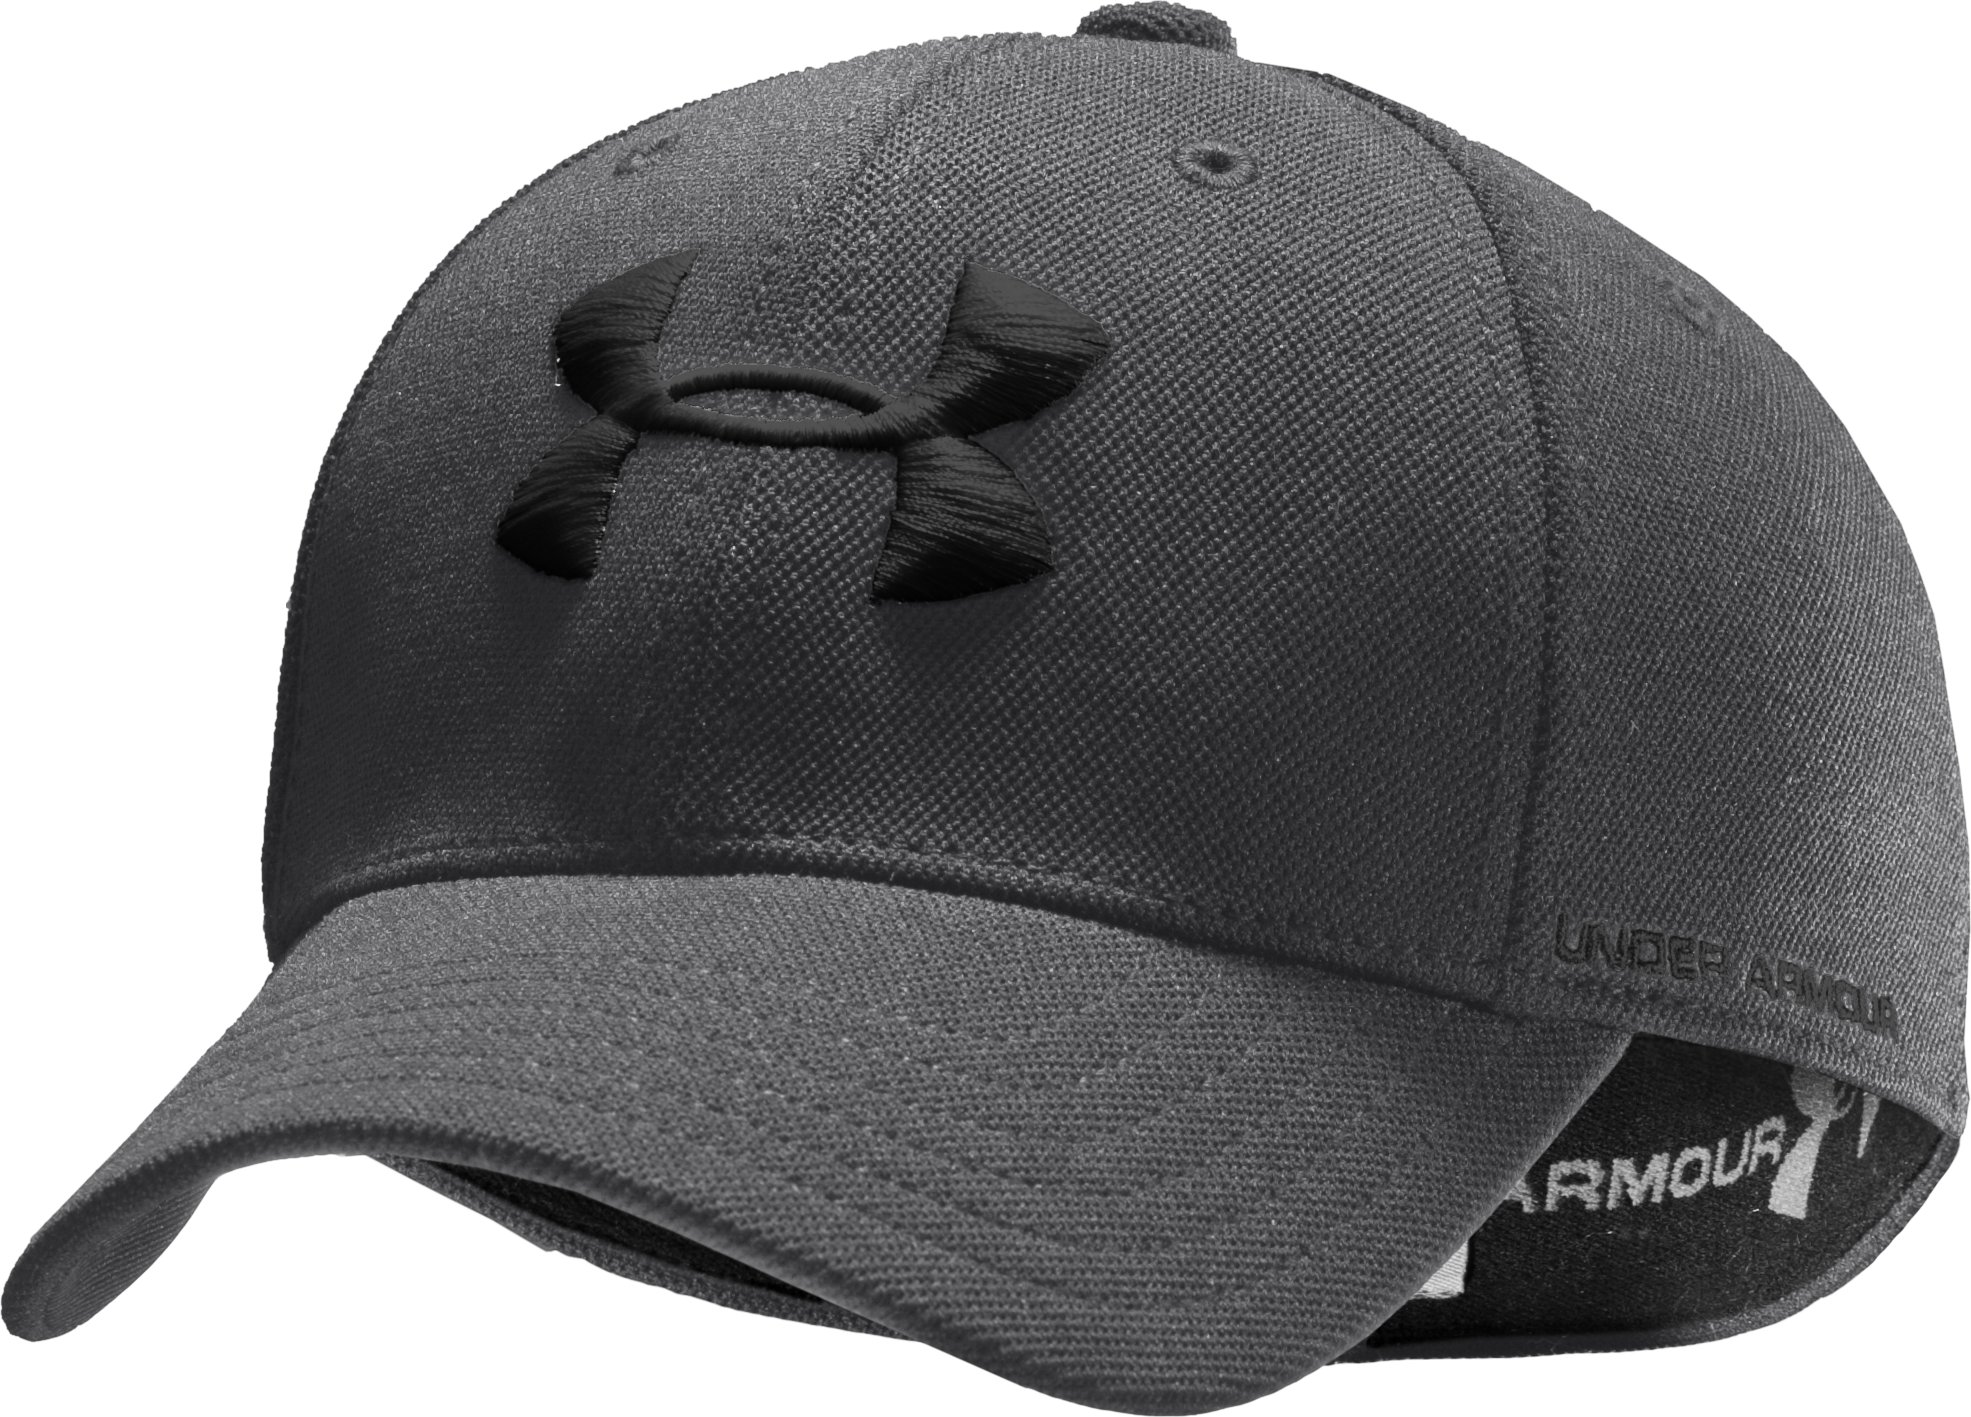 Boys' Armour® Stretch Fit Cap, Graphite, zoomed image